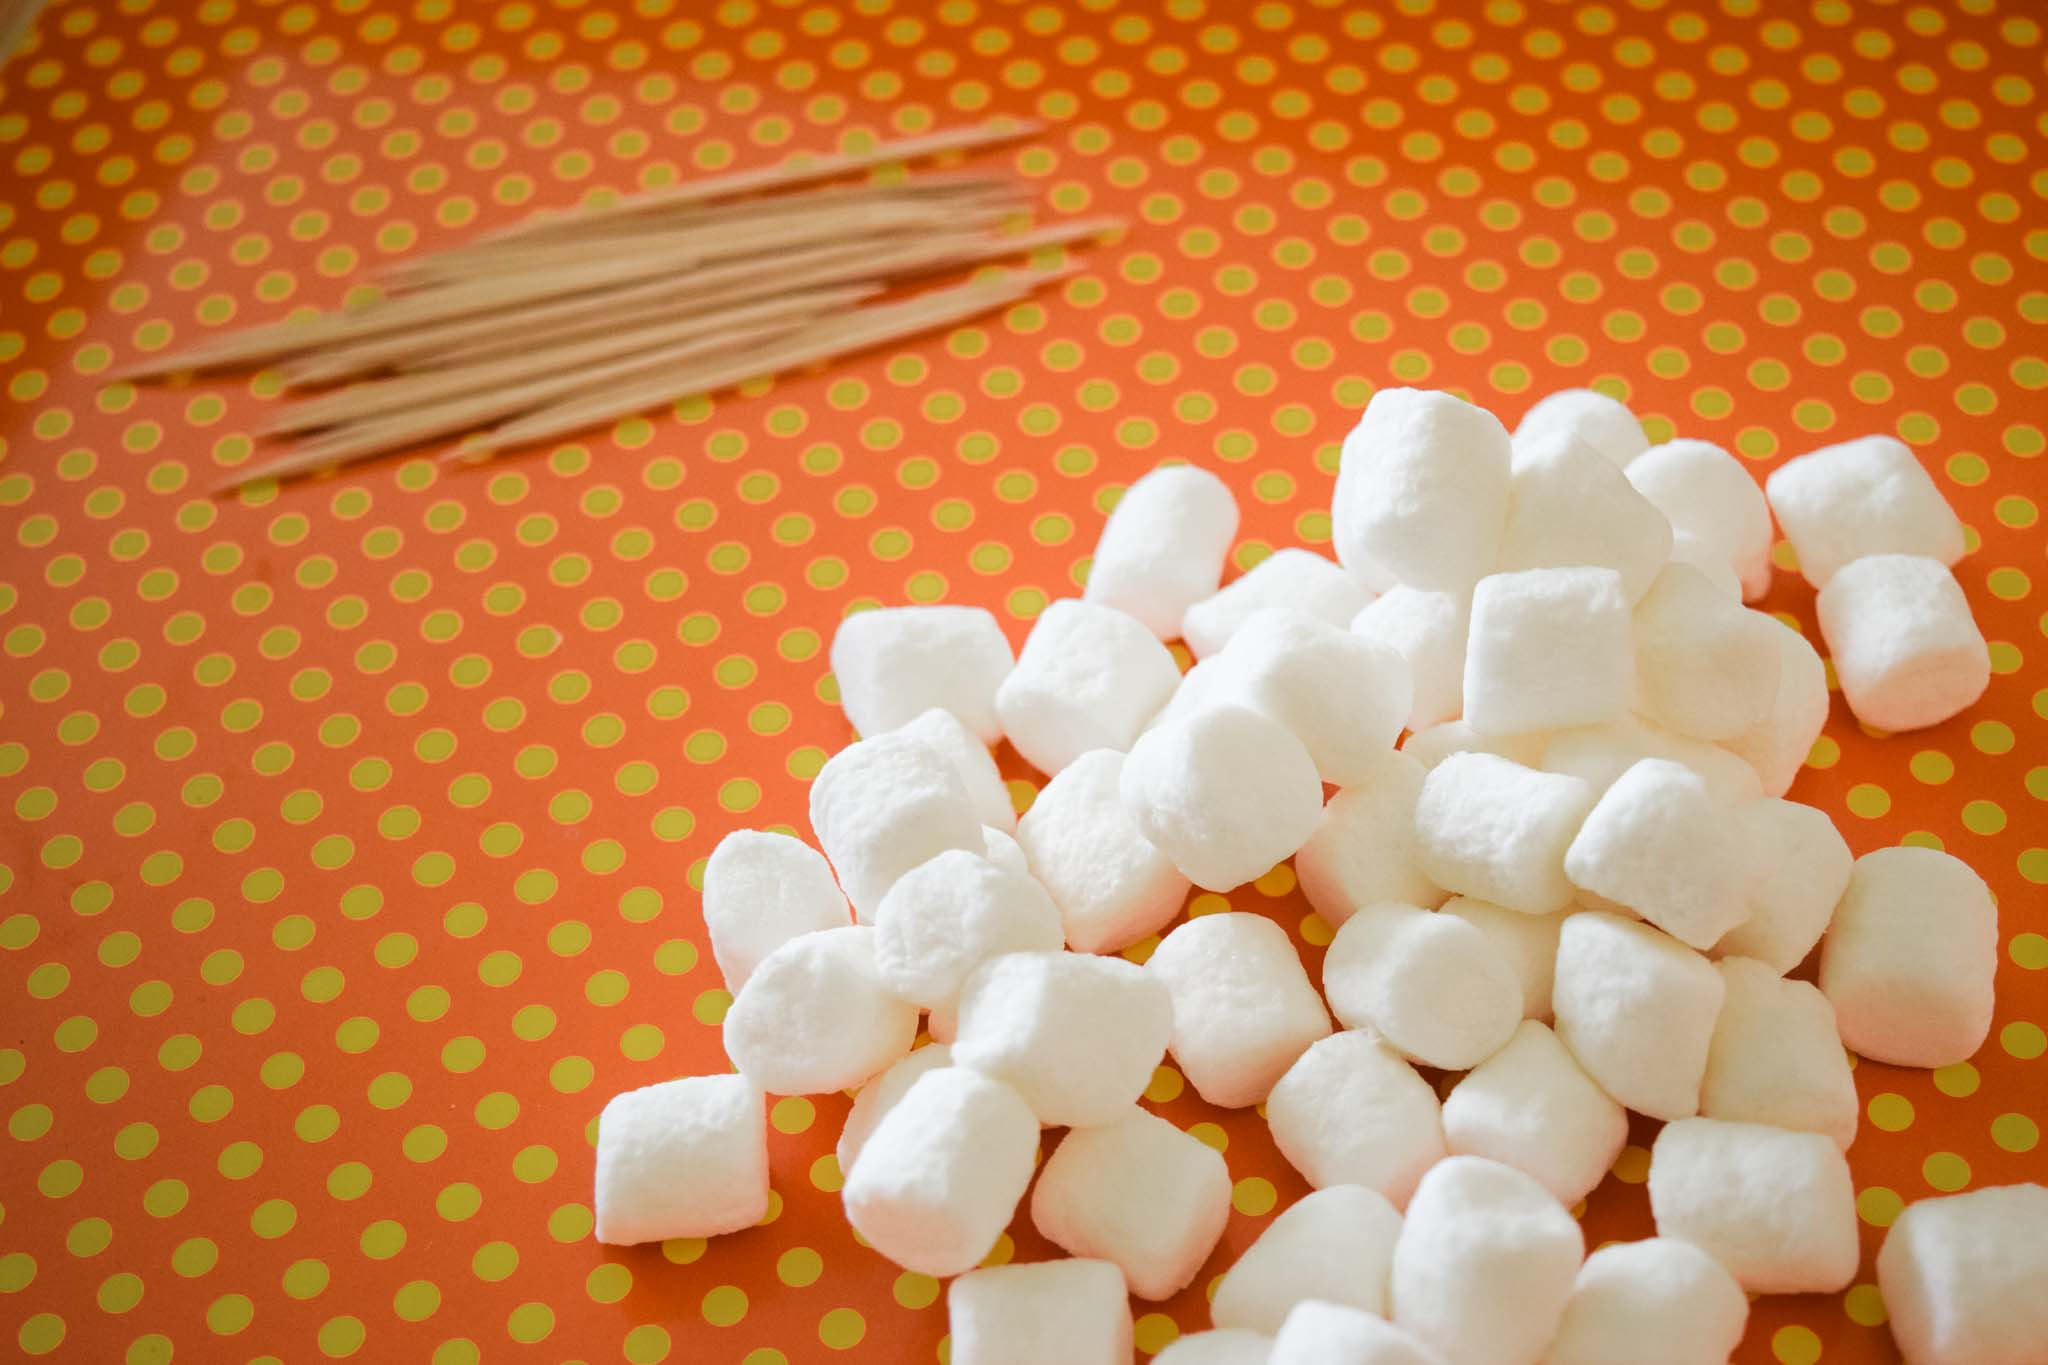 Shape Building with Toothpicks and Marshmallows